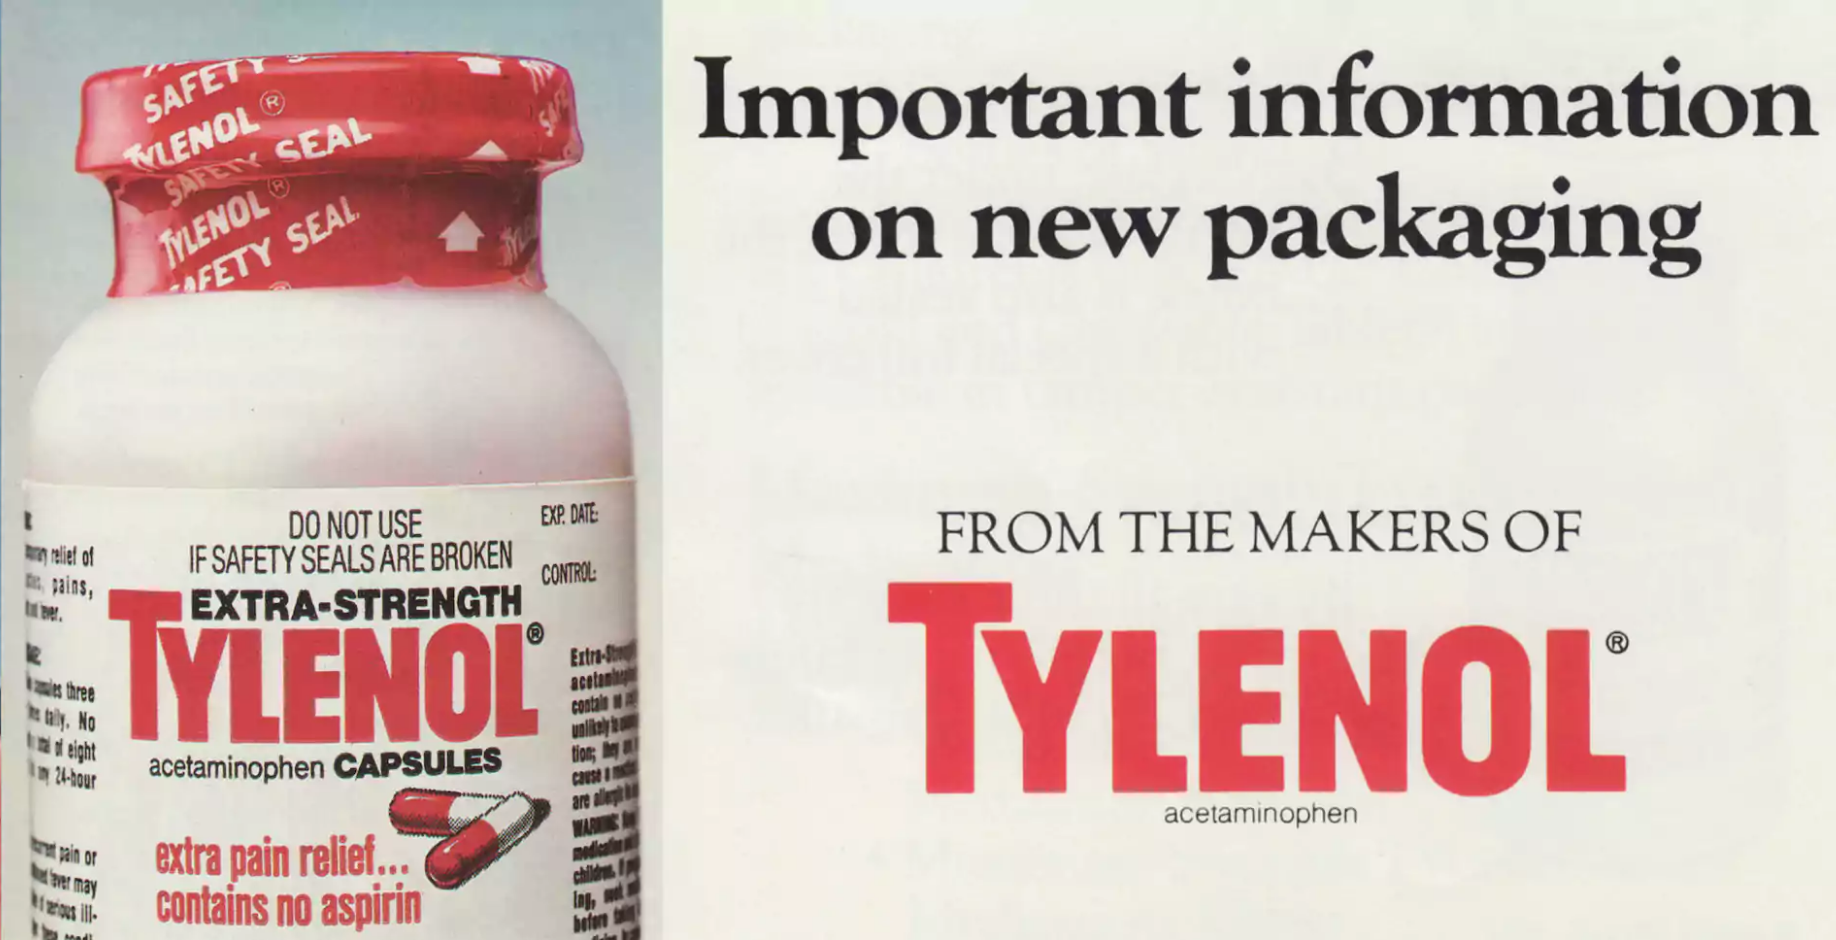 the tylenol murders The incidents on the morning of september 29, 1982, twelve-year-old mary kellerman of elk grove village, illinois, died after taking a capsule of extra-strength tylenol adam janus of arlington heights, illinois, died in the hospital shortly thereafter adam's brother.